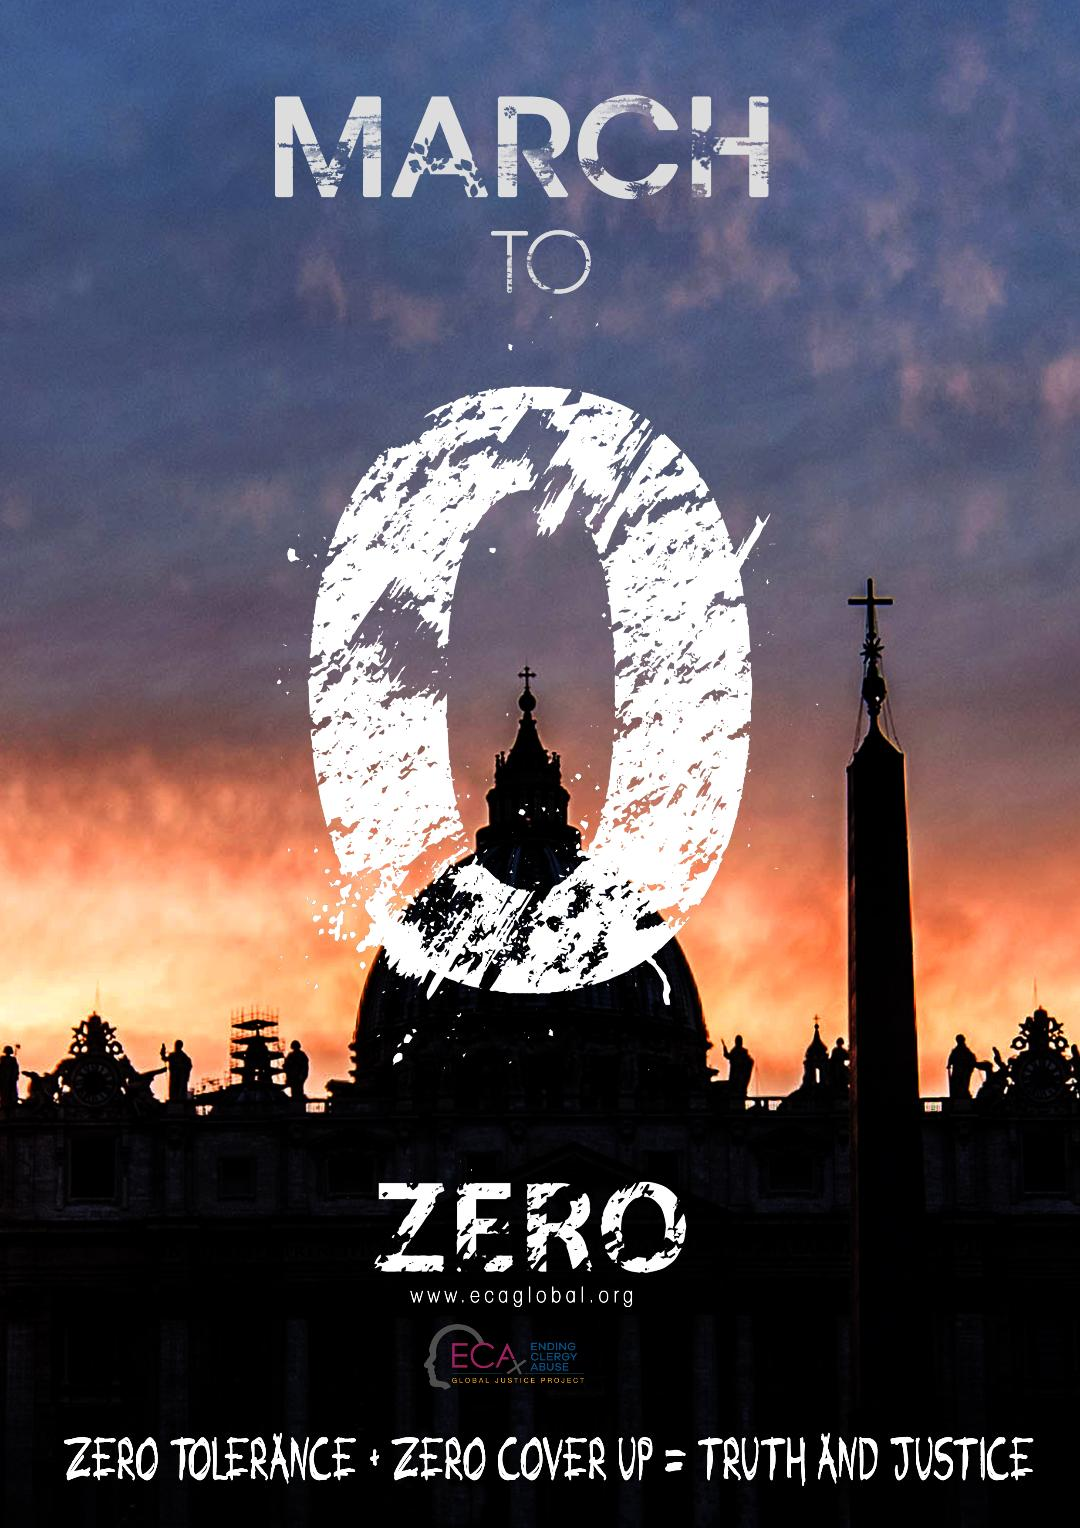 Zero Tolerance - ECA Ending Clergy Abuse-Global Justice Project